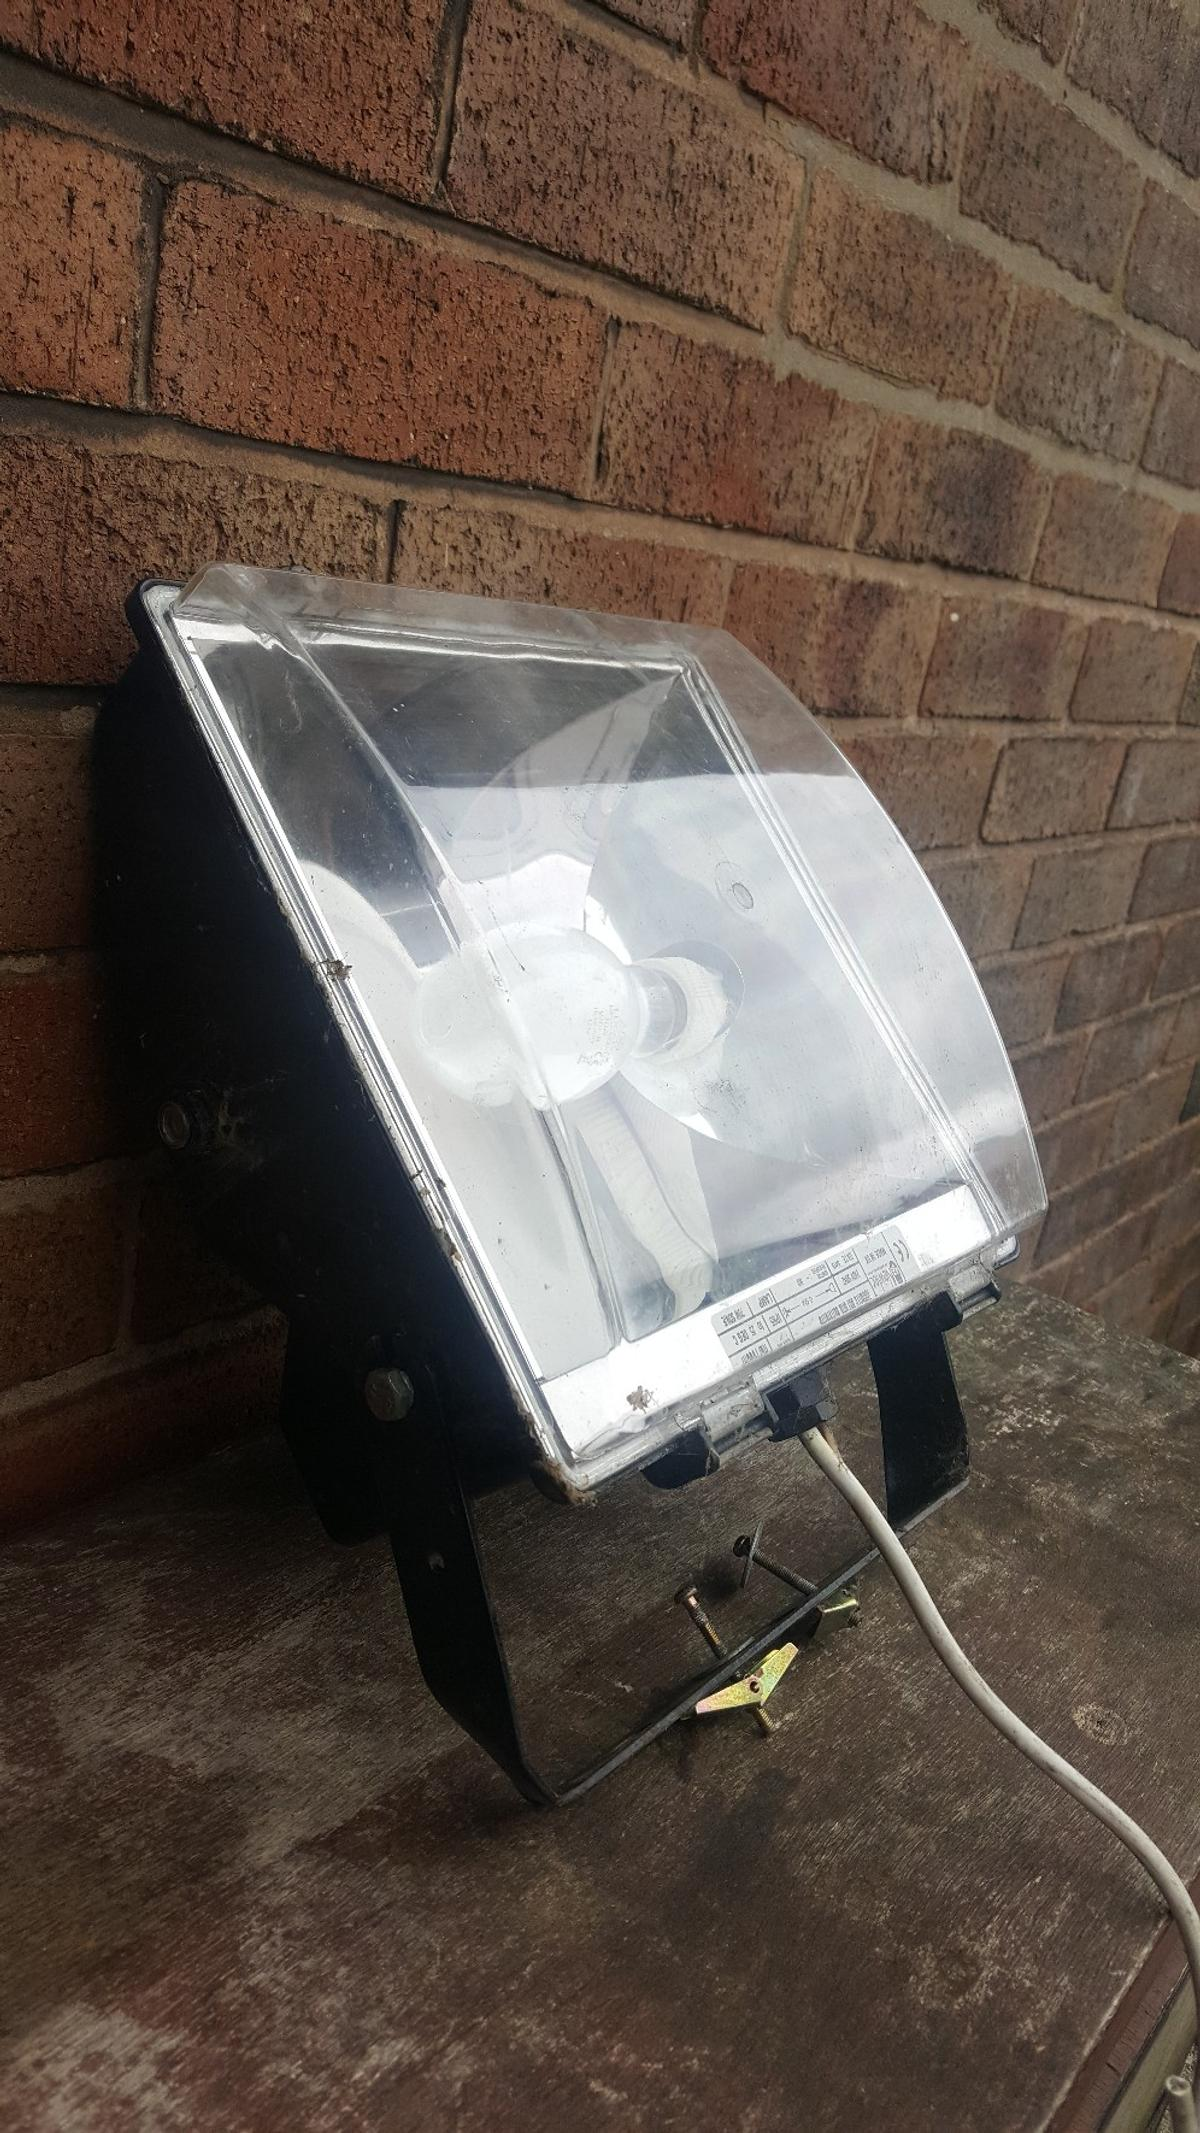 Newlec Nlf70son 70 Watt Sodium Floodlight In Wn4 Wigan For